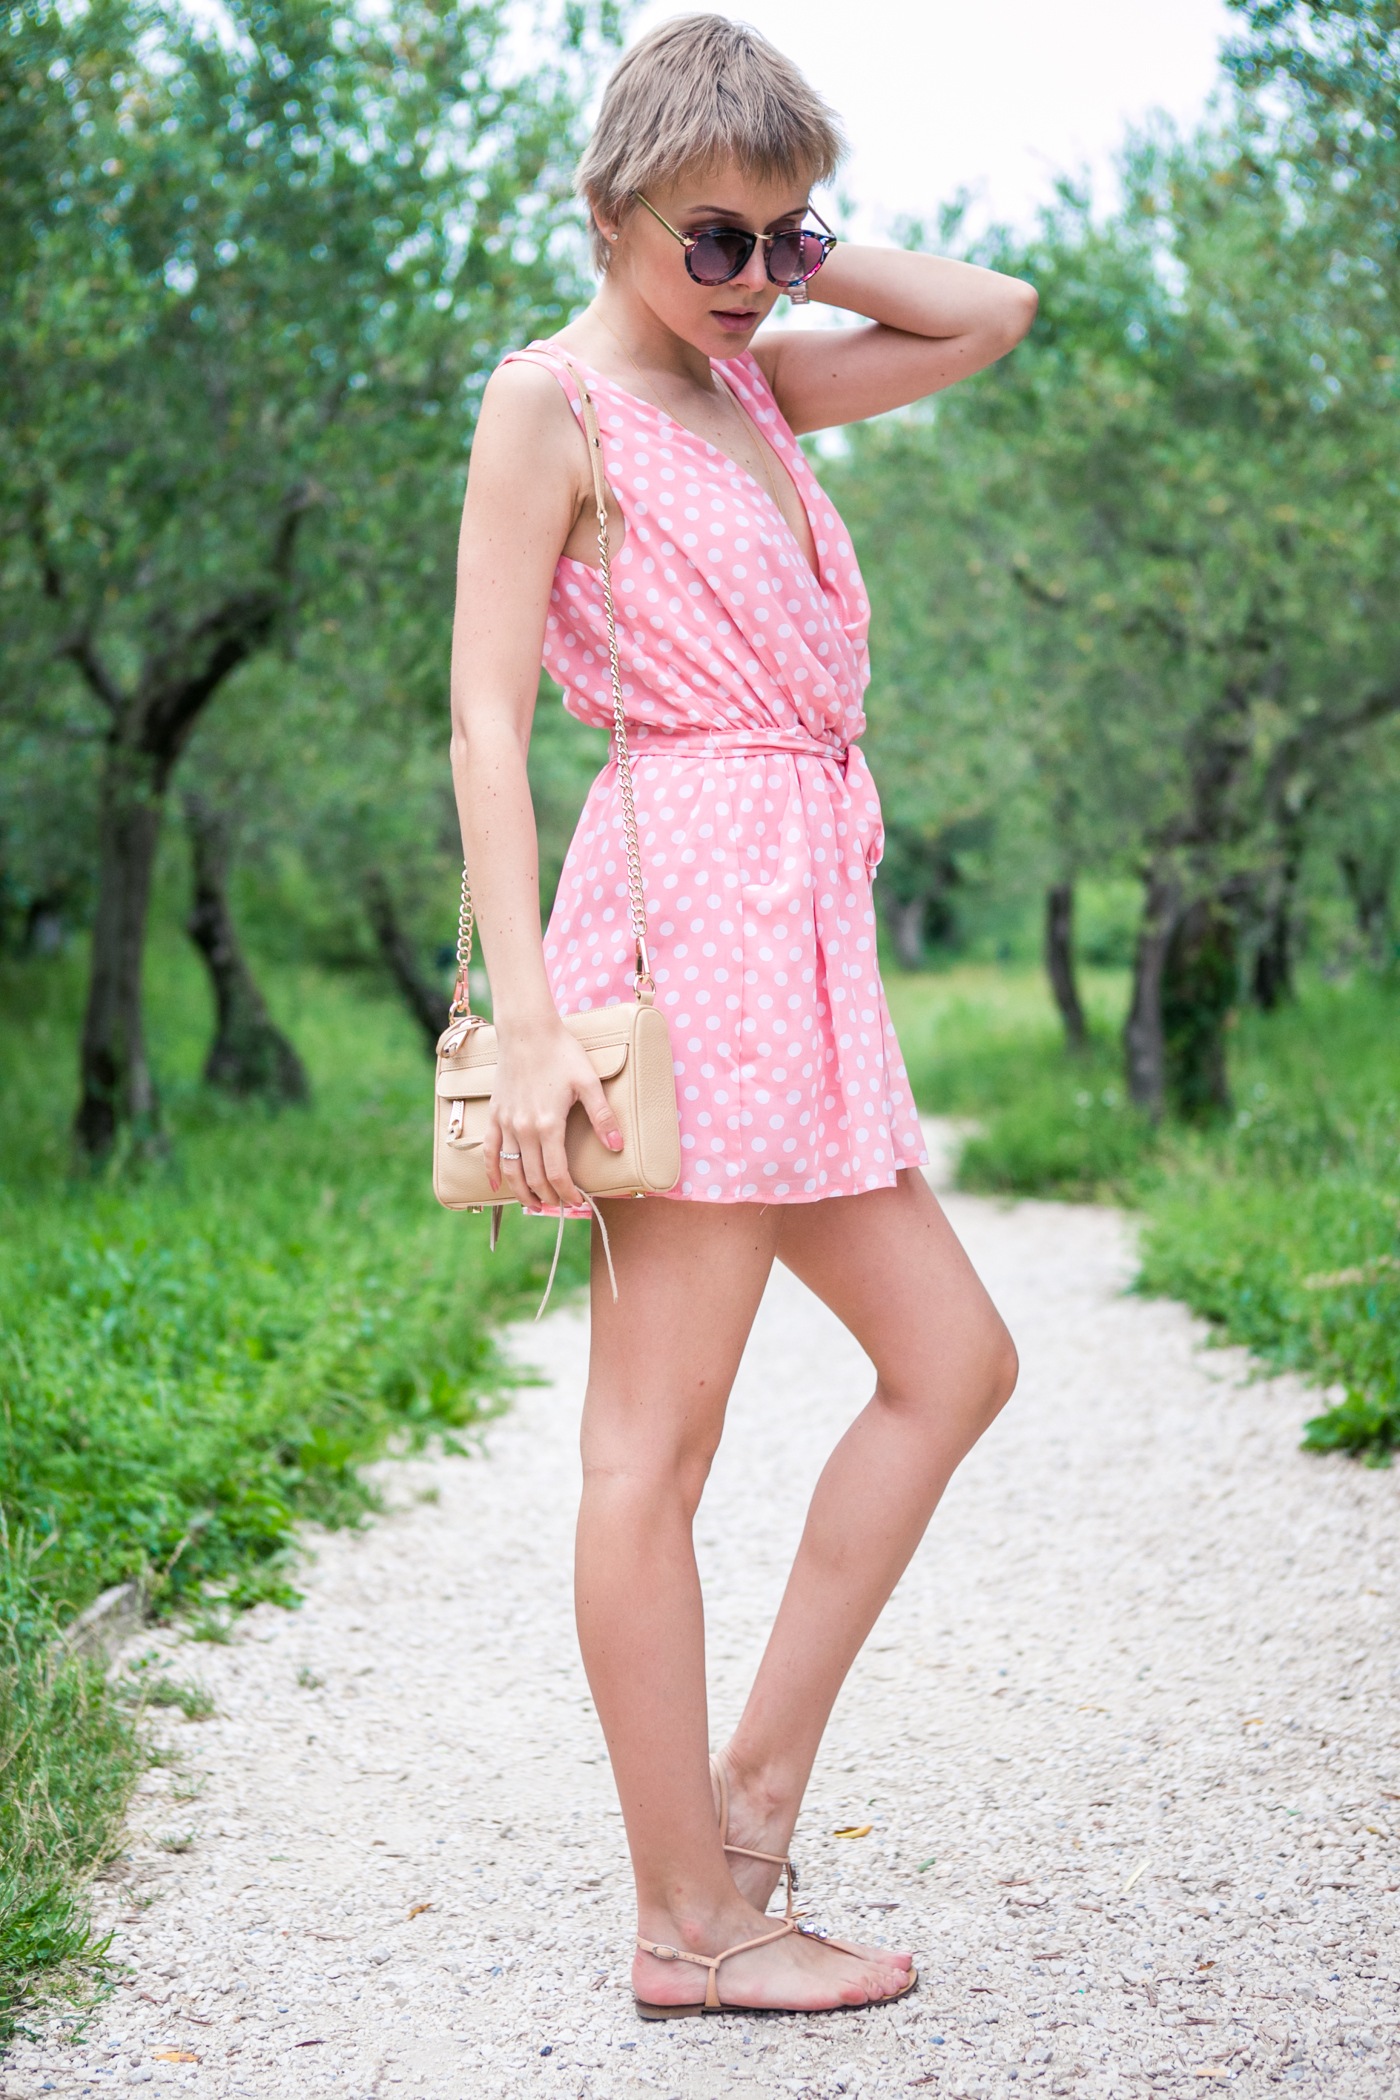 thecablook darya kamalova fashion blog street style sirmione italy verona jumpsuit rompers polka dots pixie cut short hair zanotti sandals rebecca minkoff bag vj style sunnies sunglasses outfit-131